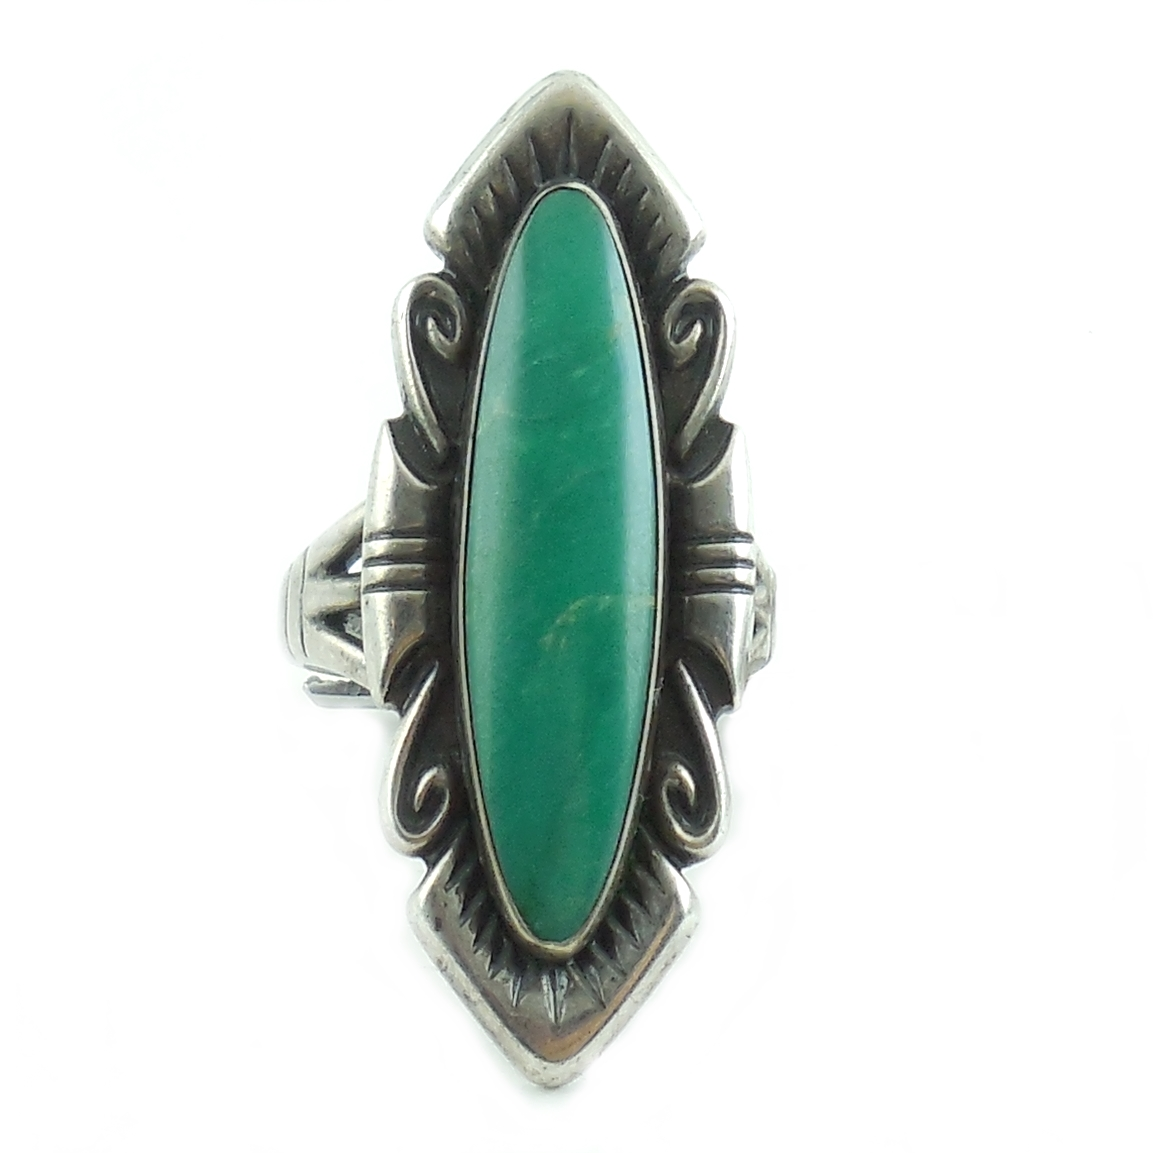 Long Southwestern Vintage Native American Sterling Silver Turquoise Ring Size 8